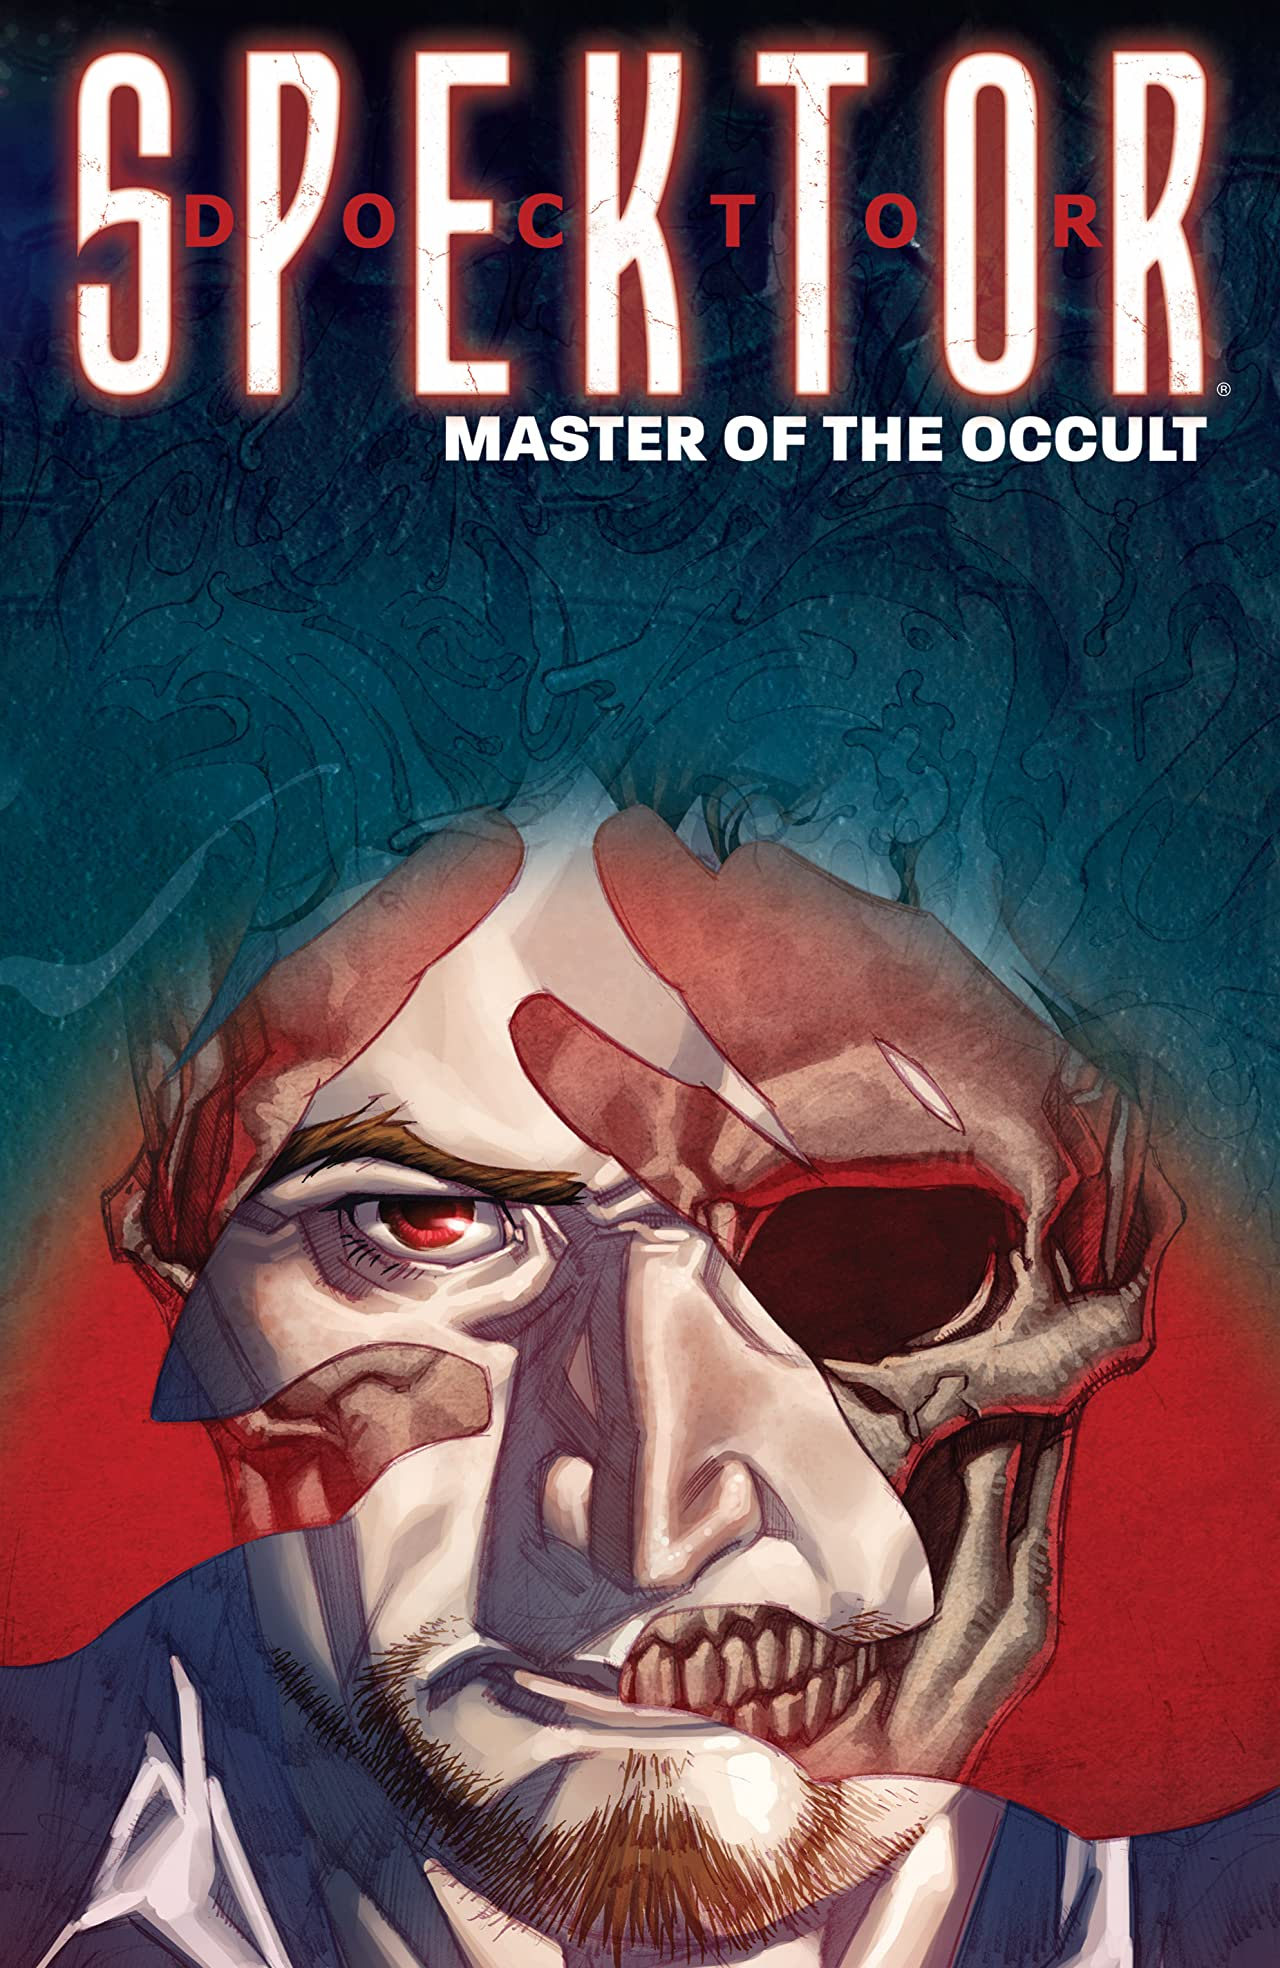 Doctor Spektor Vol. 1: Master of the Occult